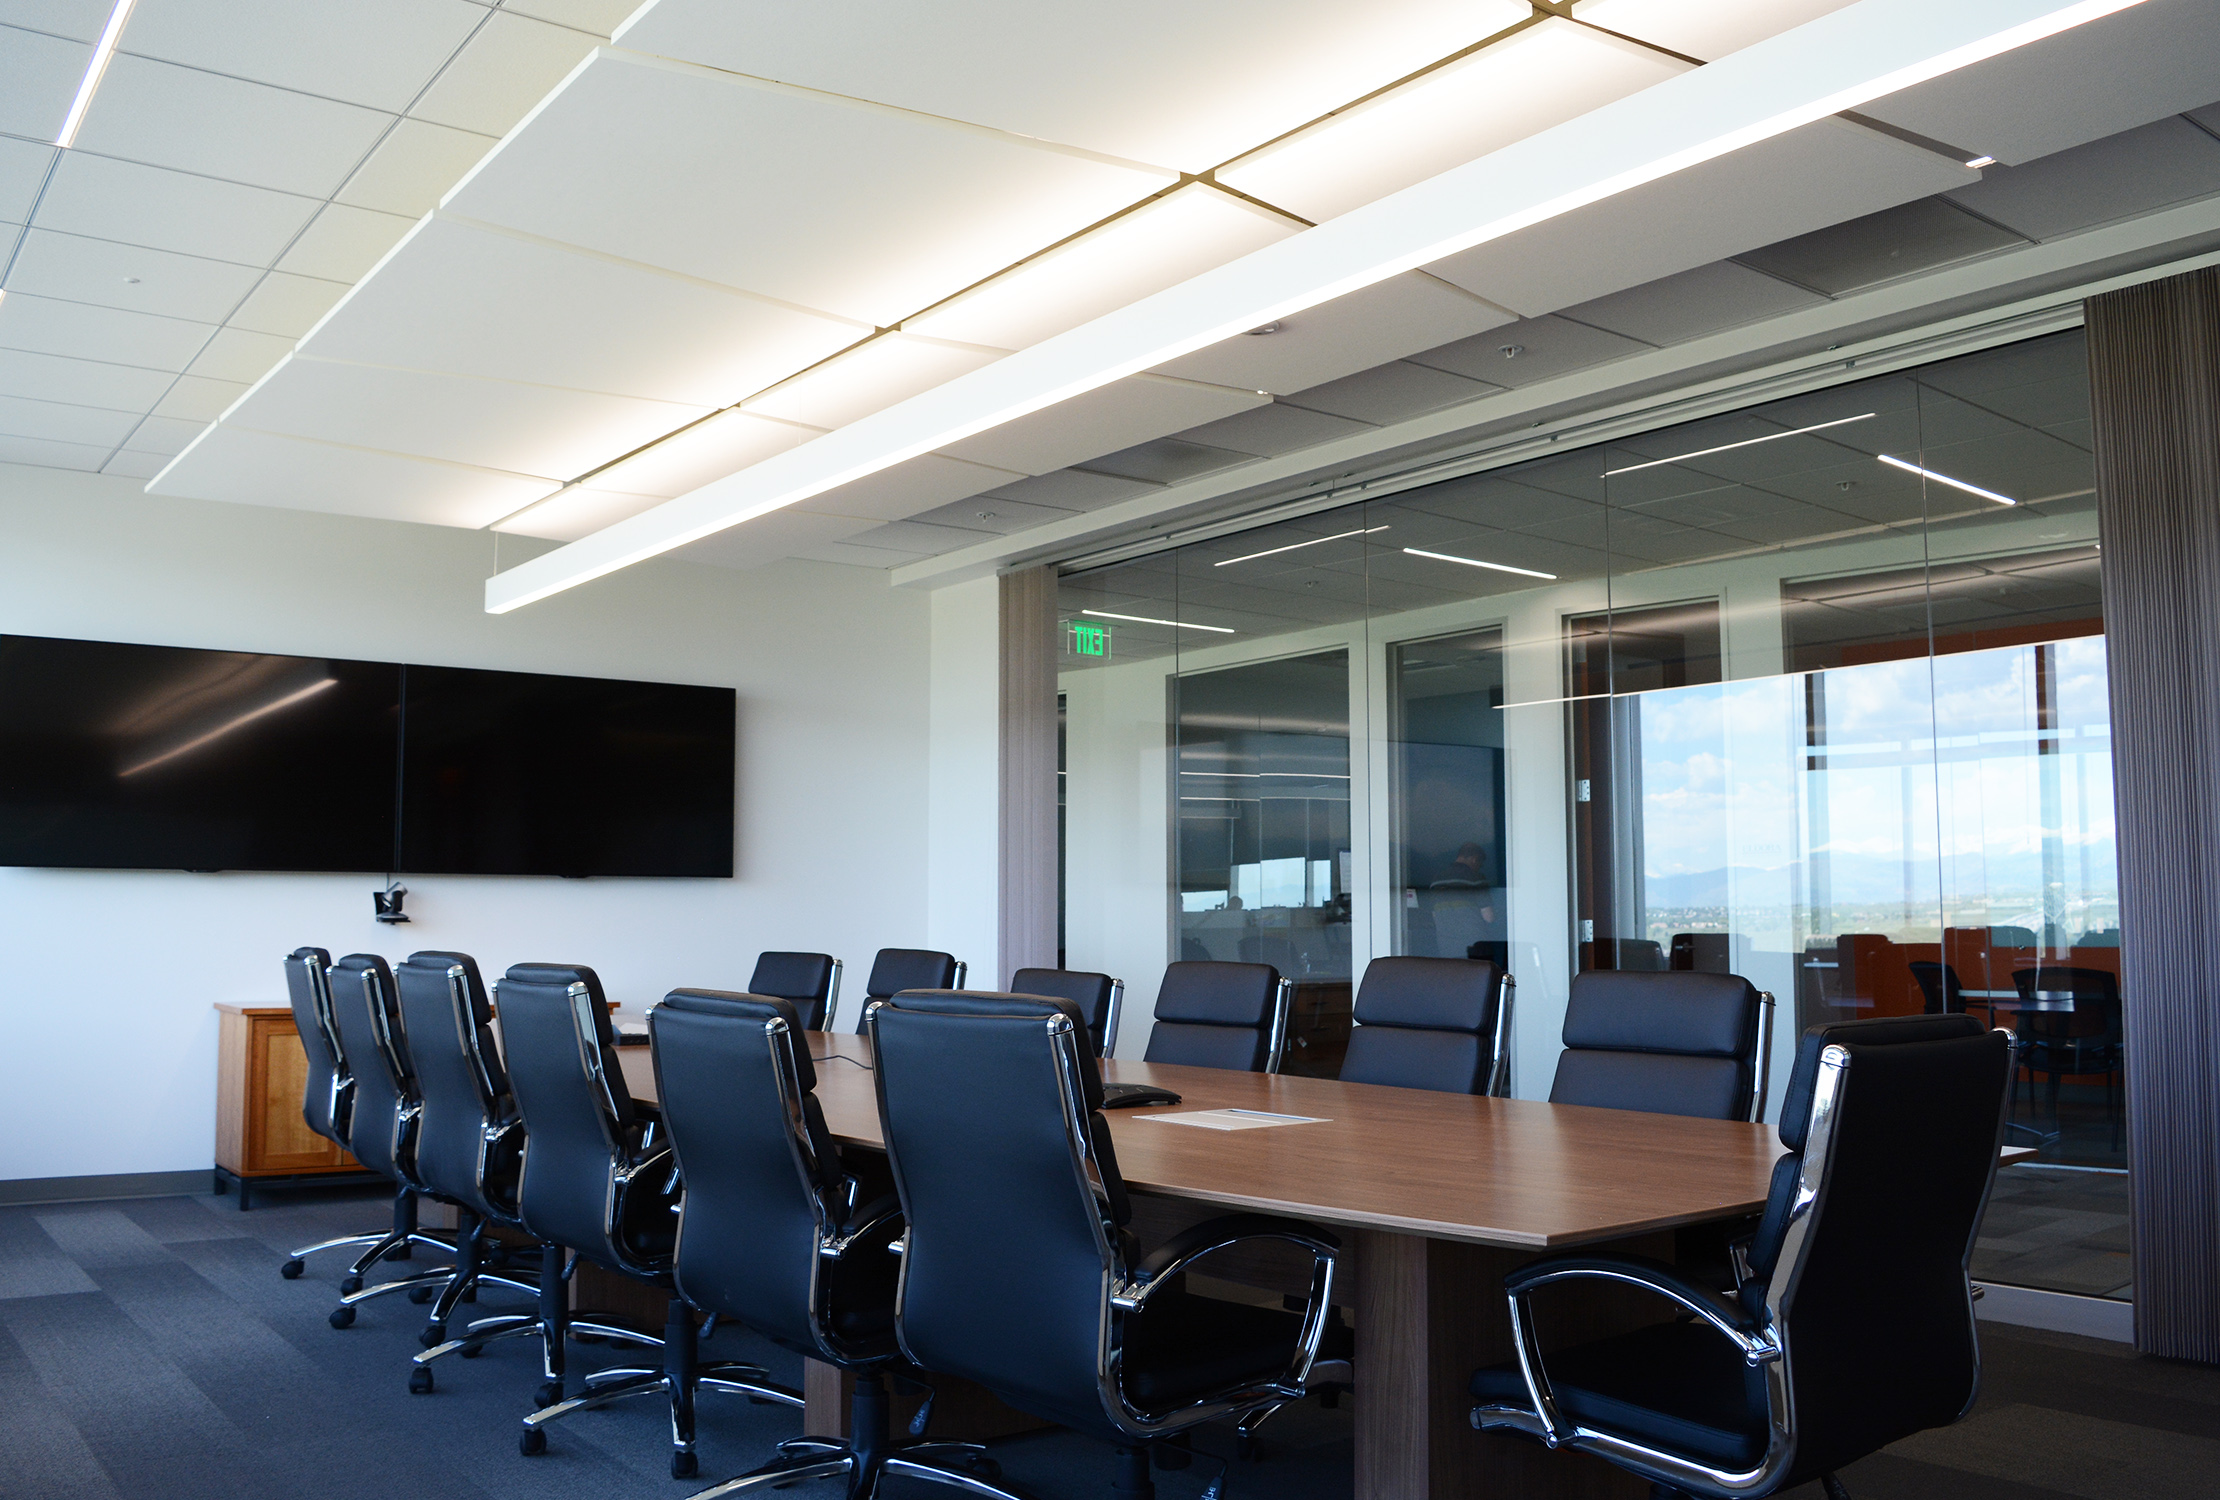 The boardroom, located just off the entry, is afforded a prime location on the glass with mountain views, which is the main feature. The room remains classic and simple with  Armstrong  acoustical clouds for noise dampening and multiple light fixture types for interest as well as functionality depending on use.